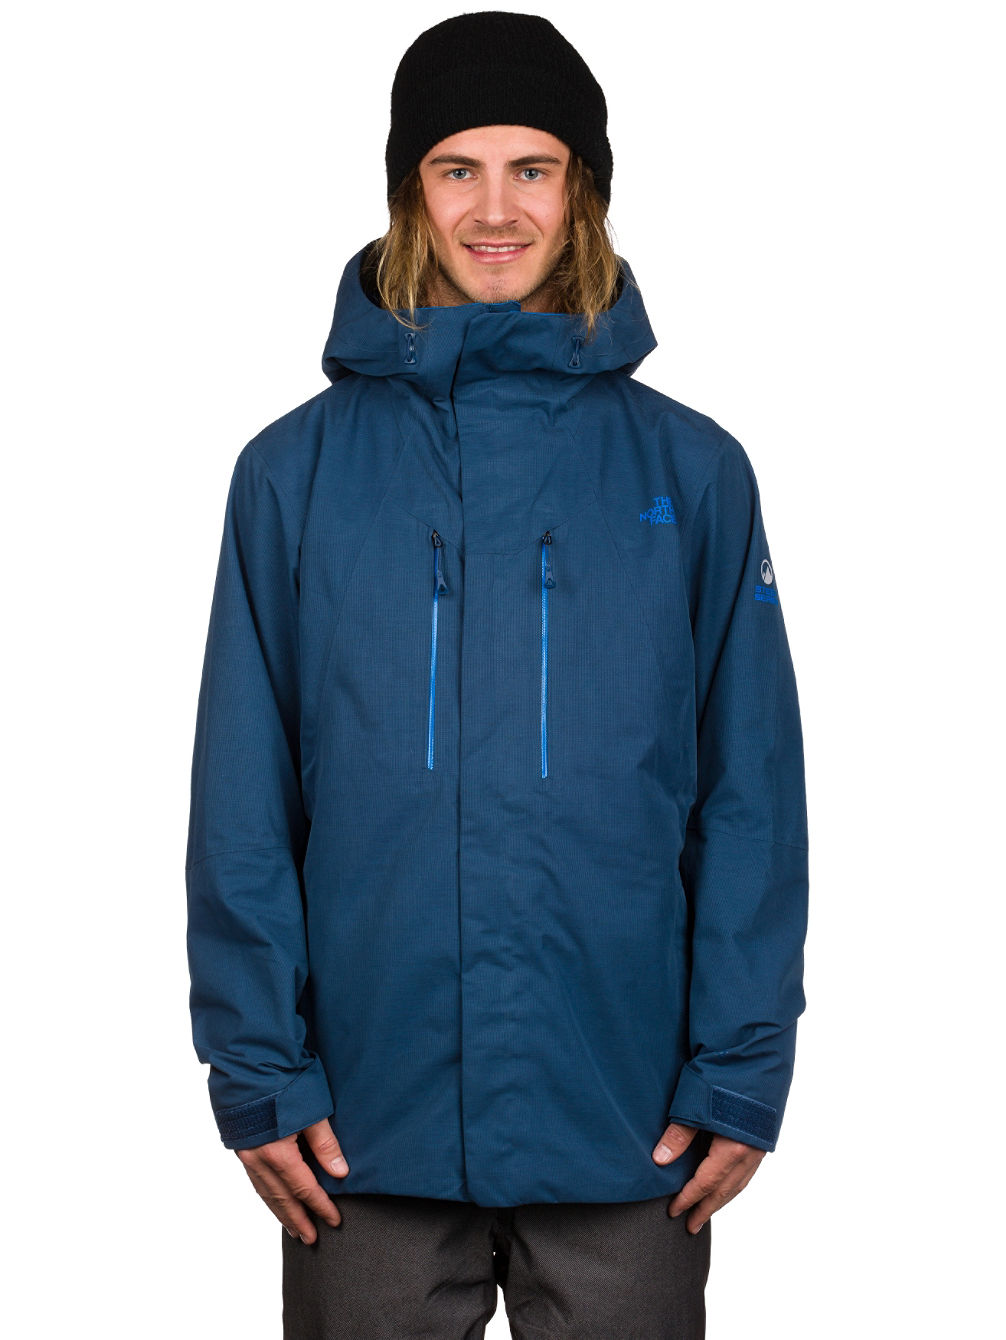 dc663d8789c5 Buy THE NORTH FACE Nfz Jacket online at Blue Tomato